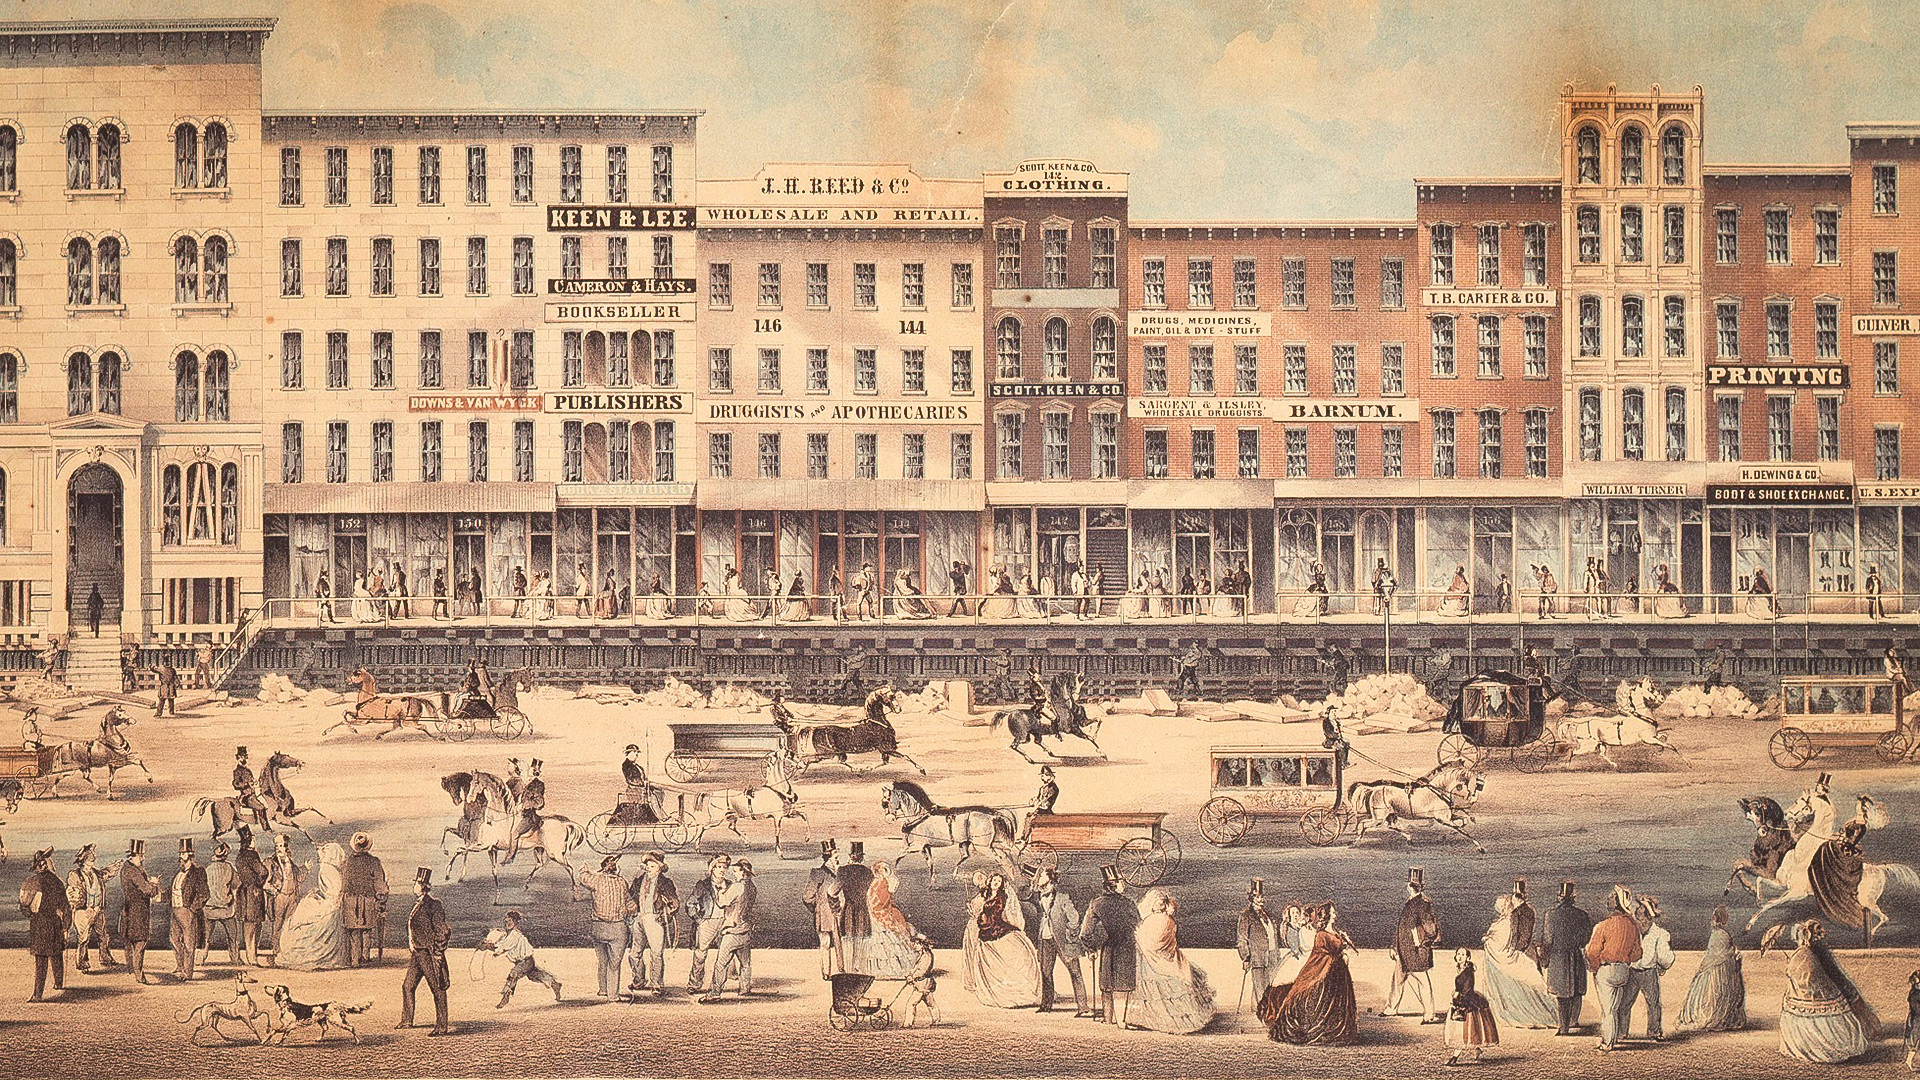 Chicago in the 1860-s.